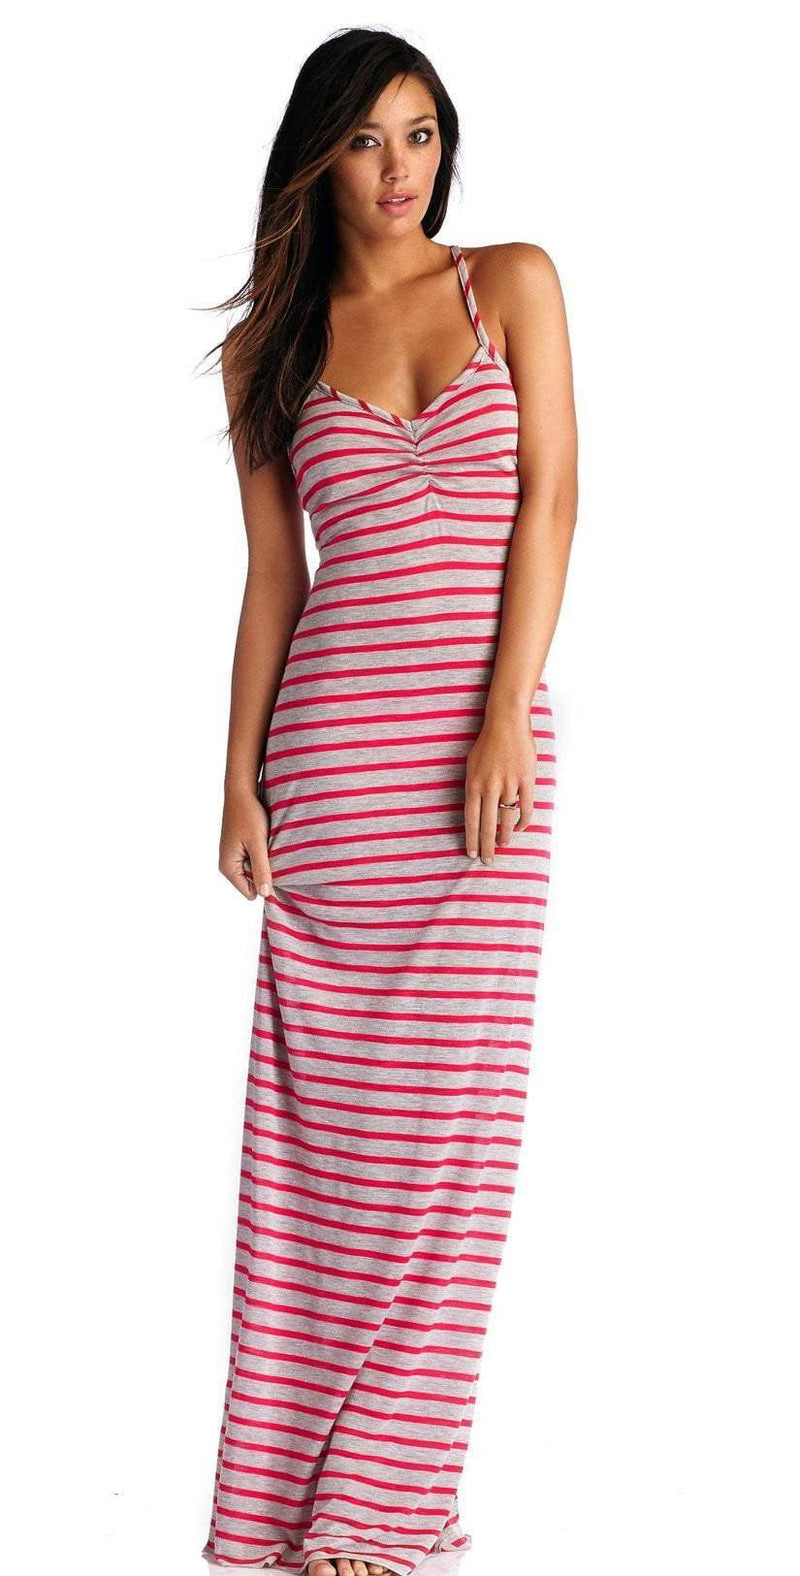 CA by Vitamin A Erica Heather Stripe Rose Long Dress 33DHSR: